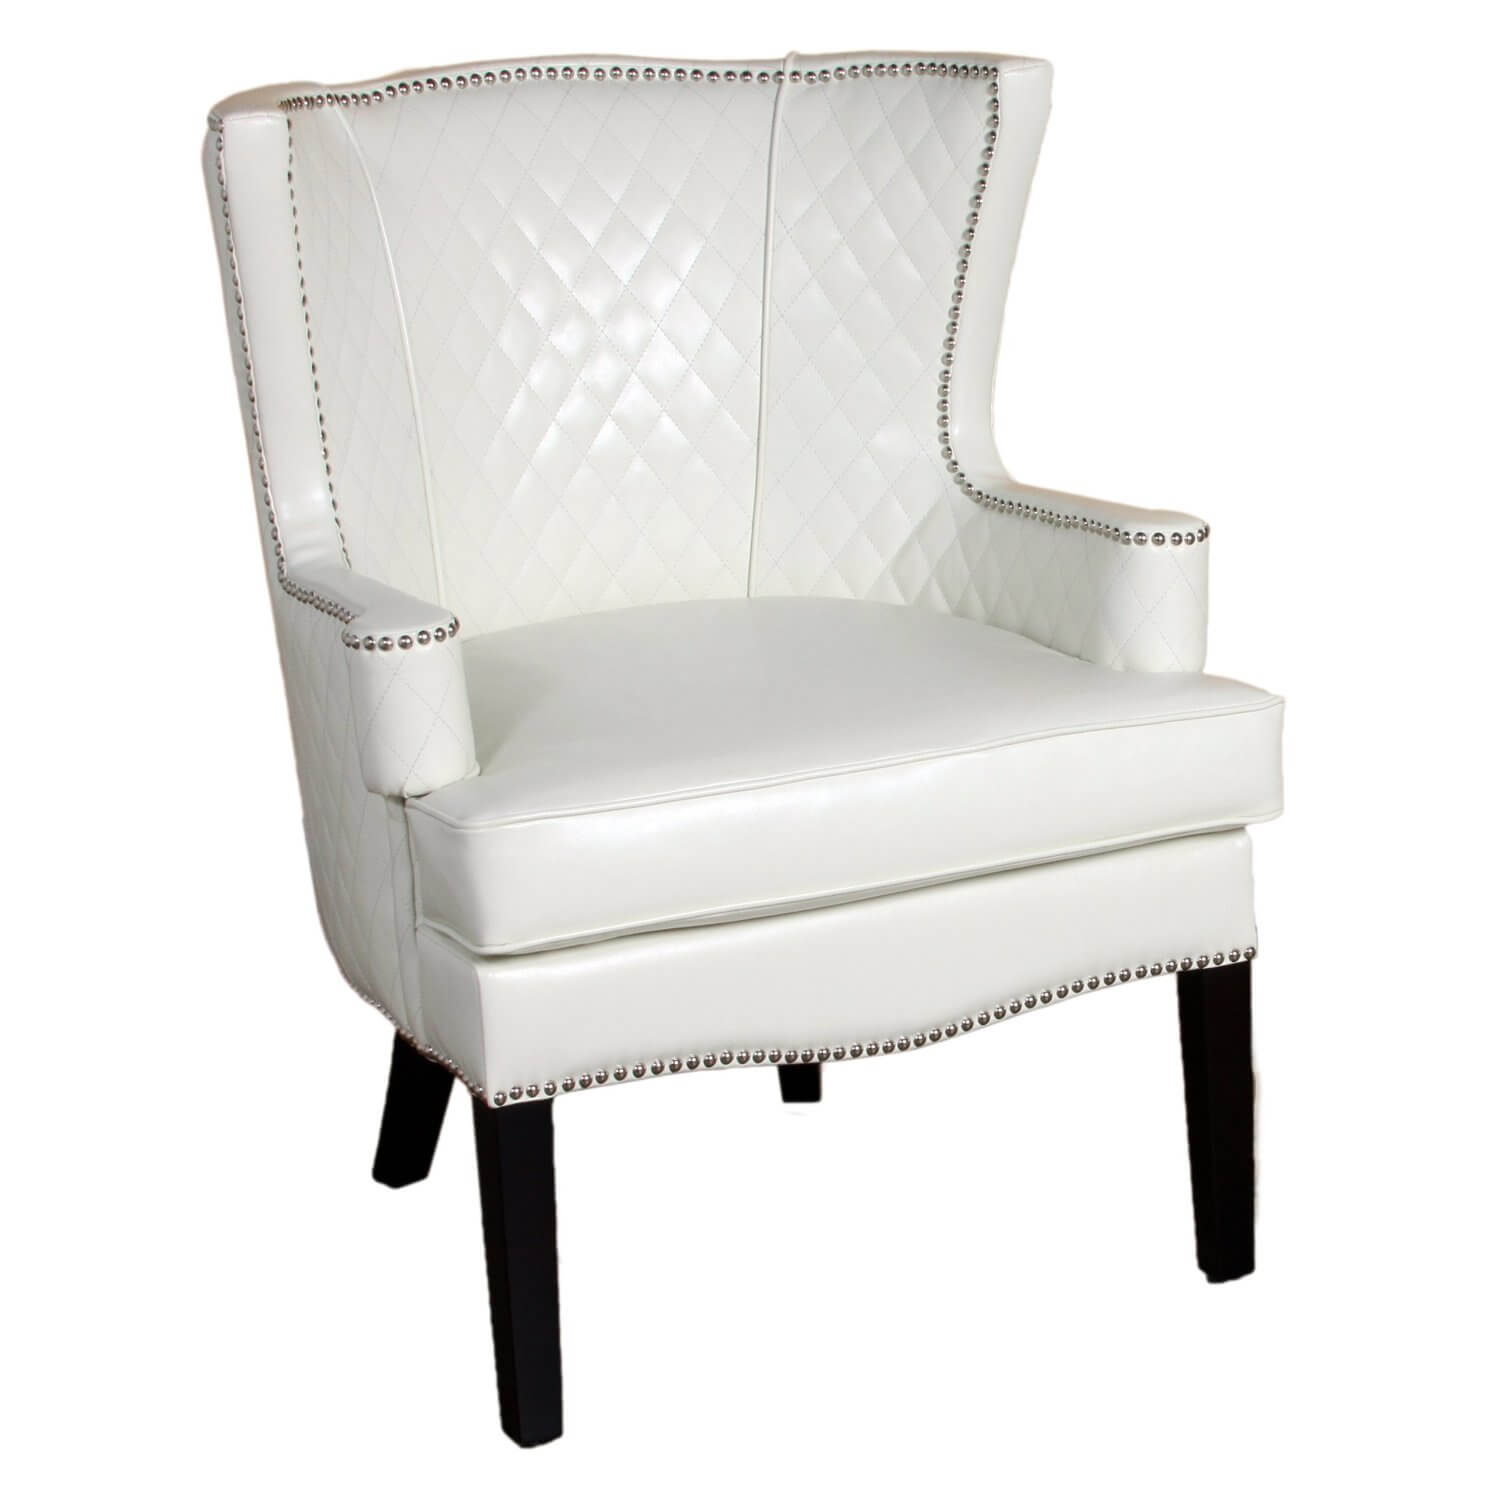 leather accent chairs for living room interior decorating rectangular 37 white modern the another ivory toned chair this quilted seat by best features wide seating with